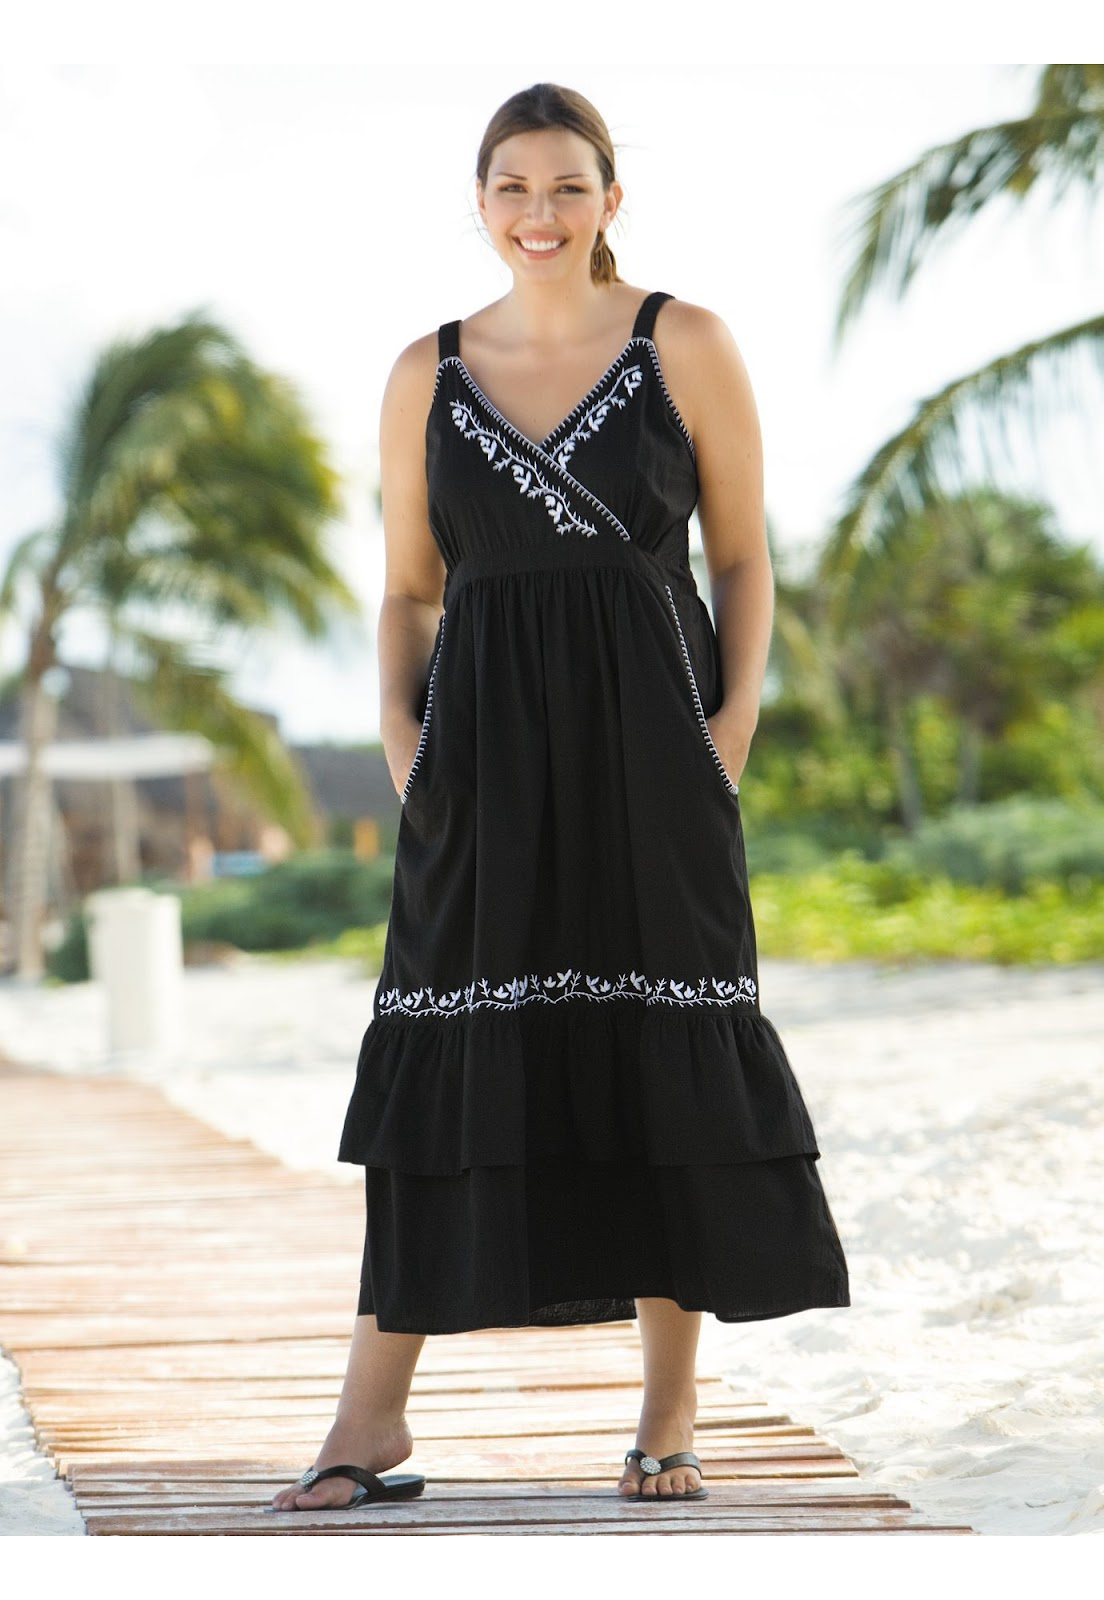 f681c159bd11 Dresses Summer Walmart Plus Size